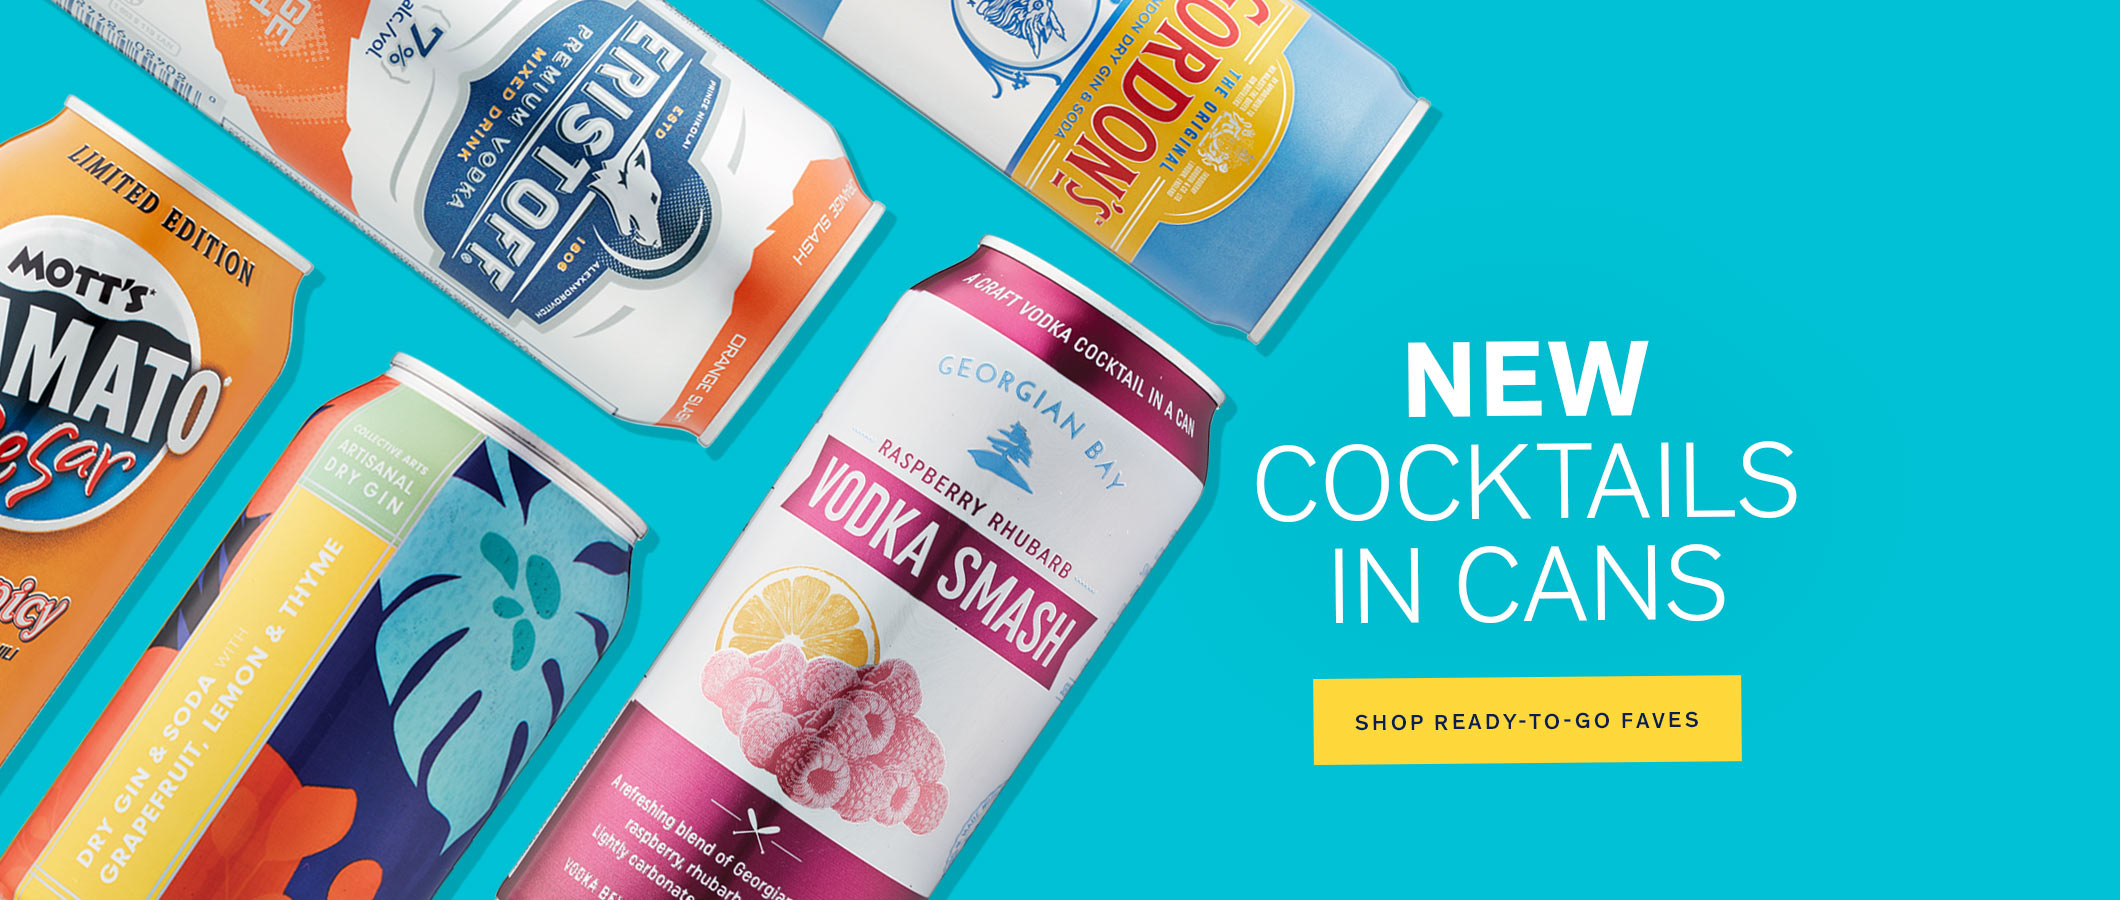 New Cockails in Cans